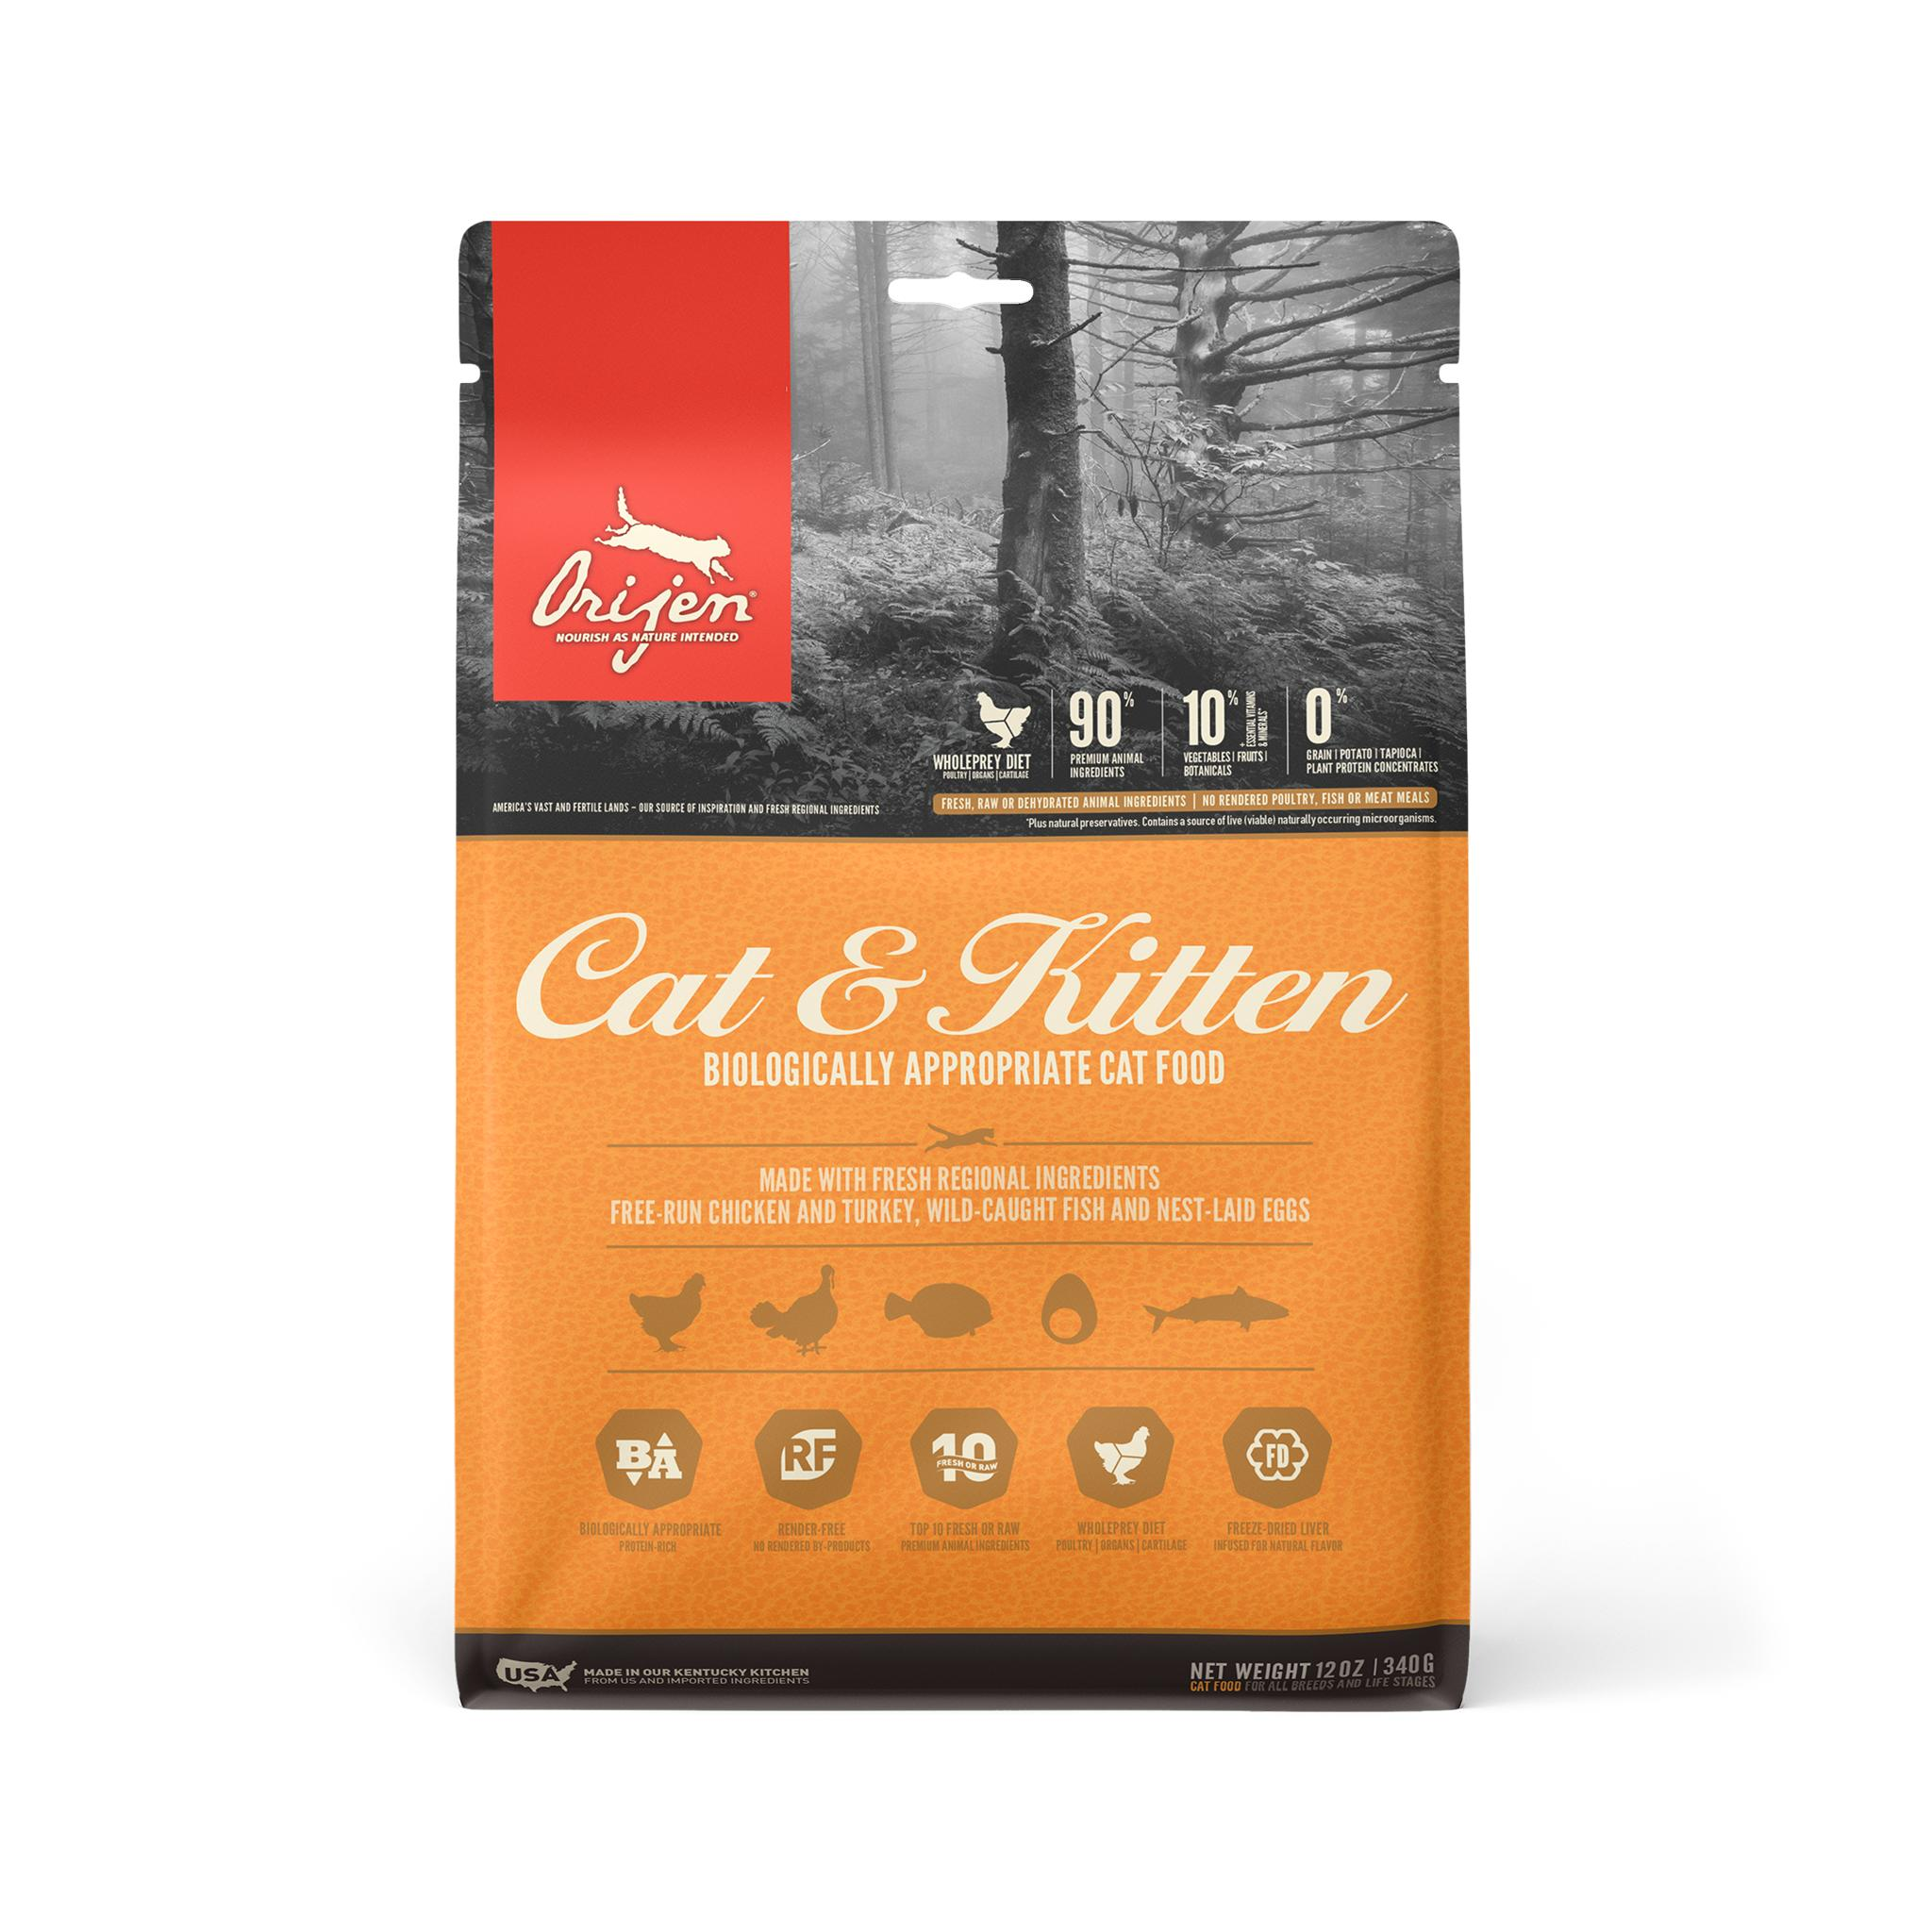 ORIJEN Cat & Kitten Dry Cat Food Image